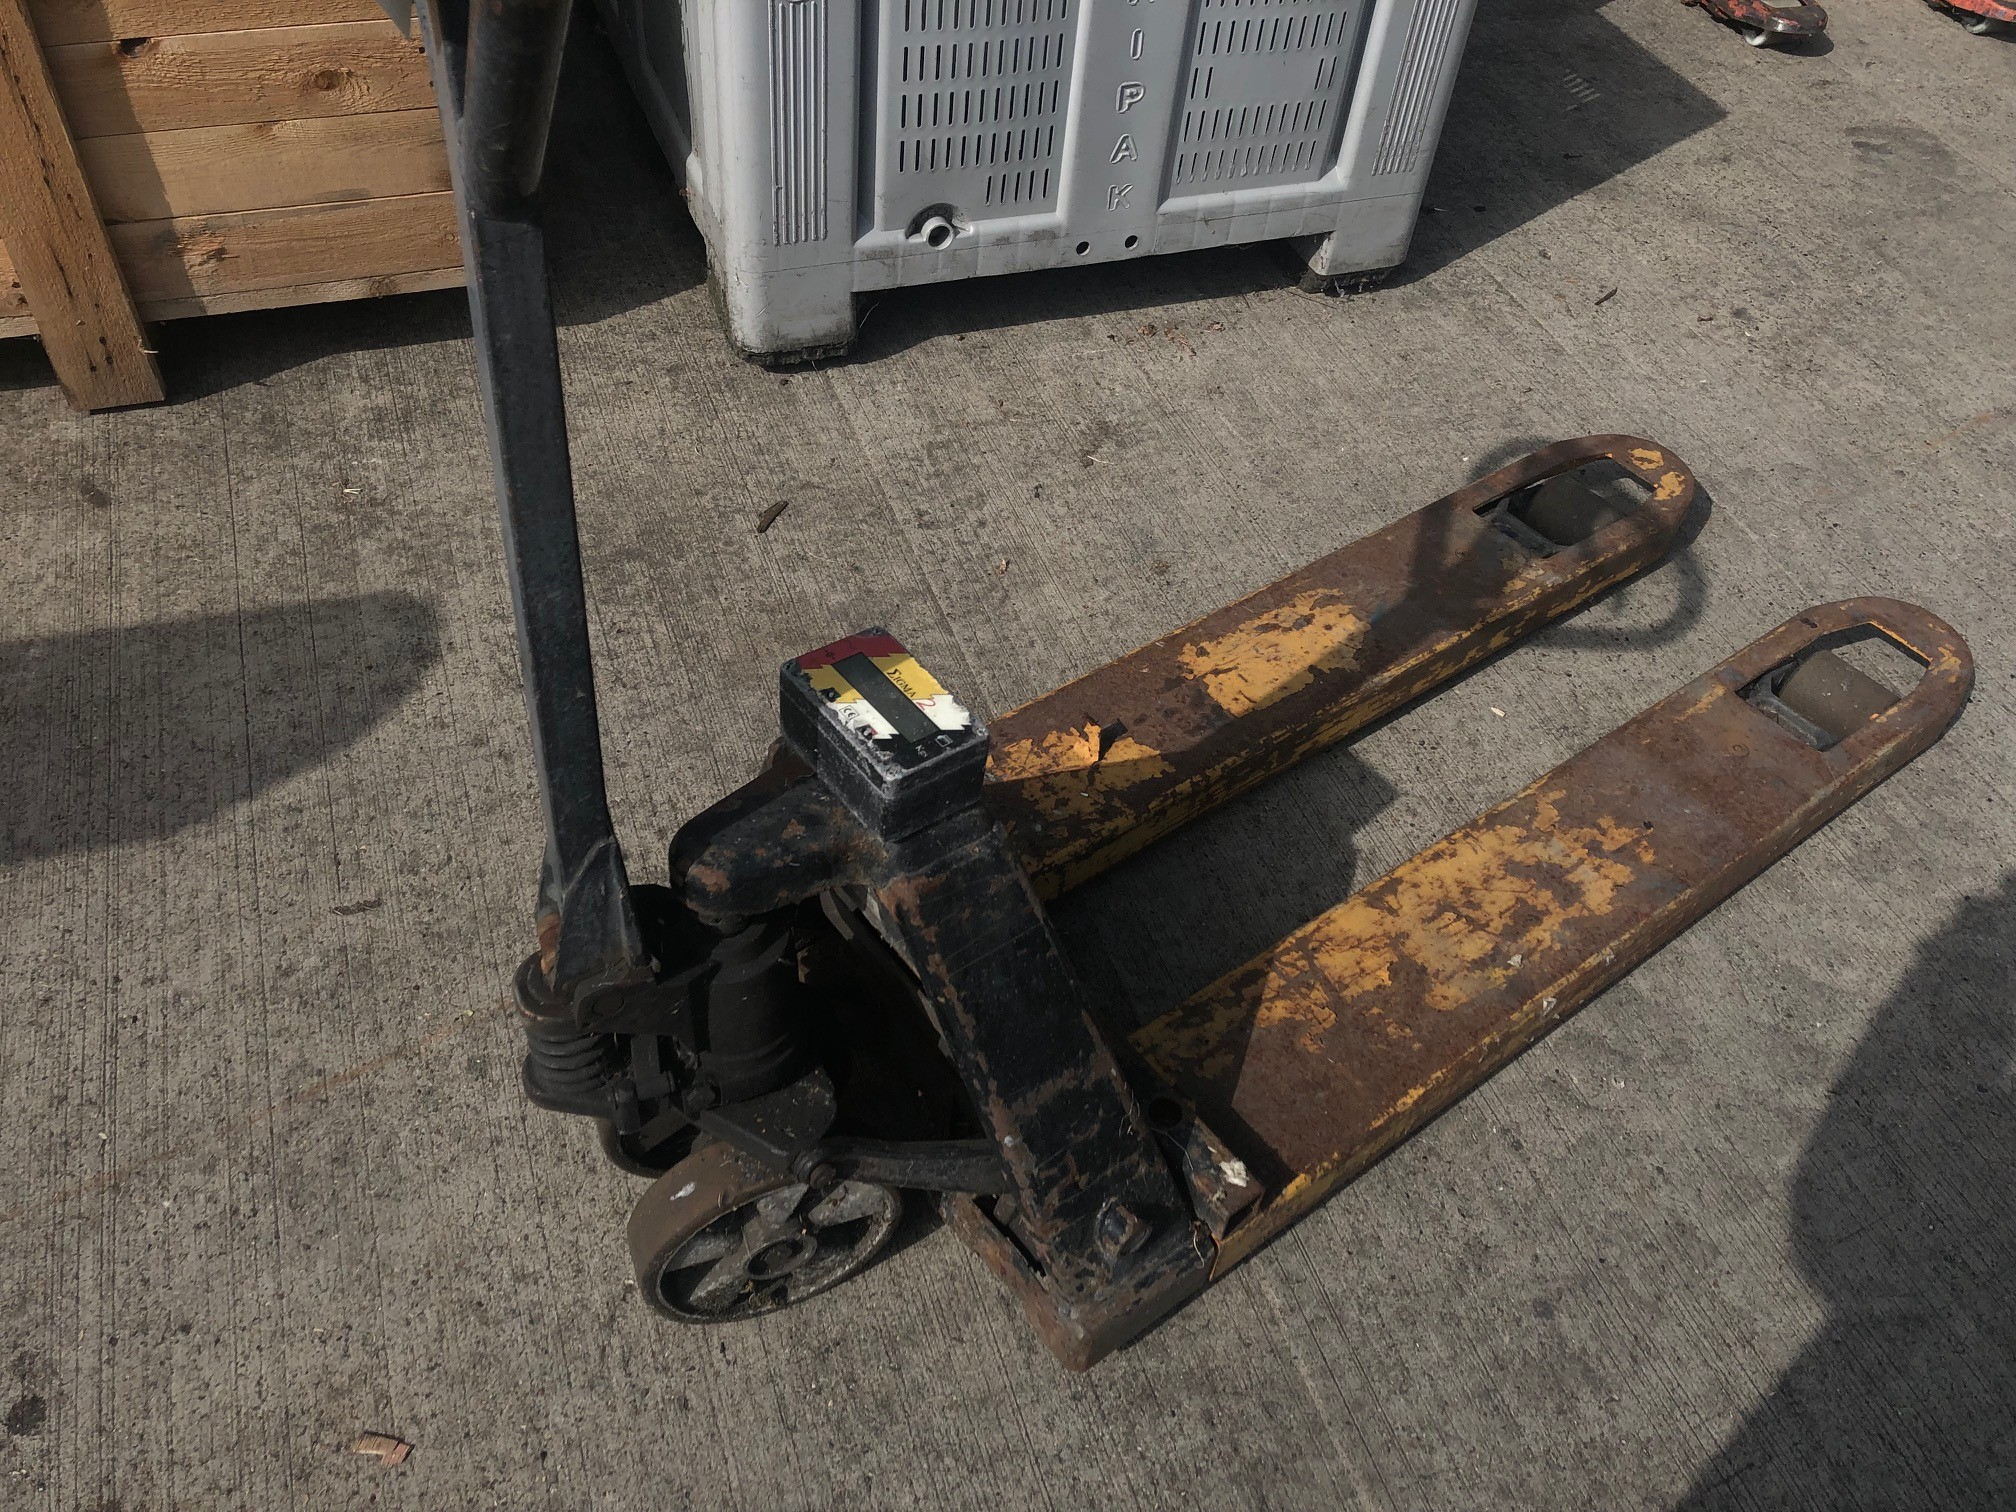 Lot 74 - Hand Hydraulic Pallet Truck, lift out charge - £10